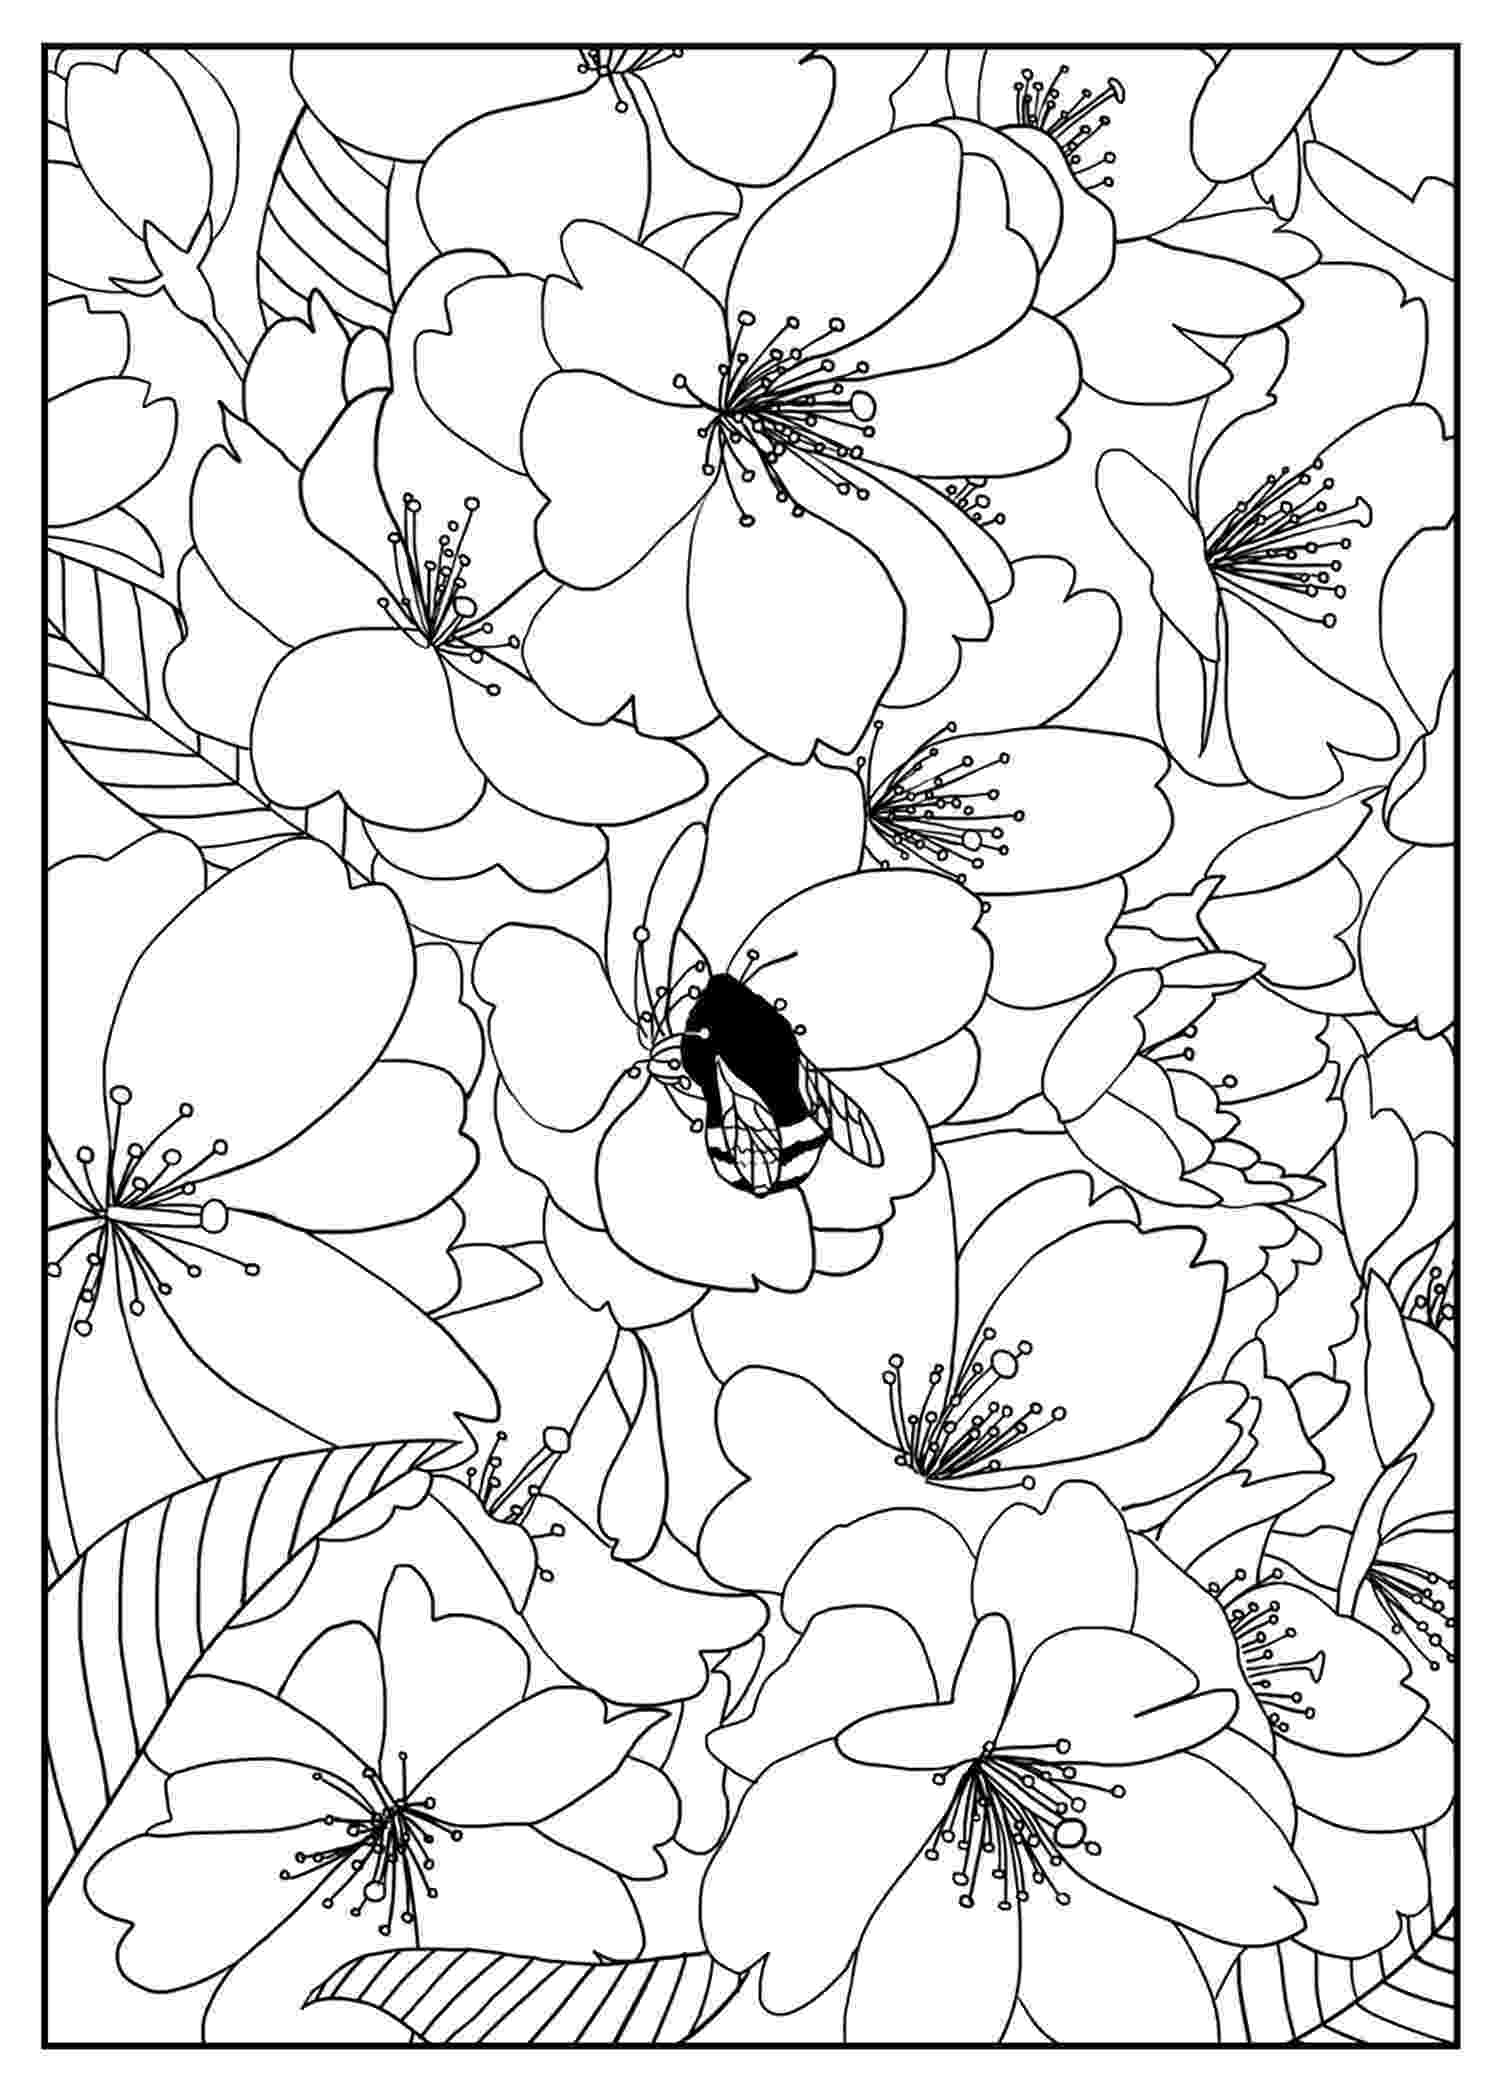 flower coloring sheets for kids free printable flower coloring pages for kids best flower coloring kids sheets for